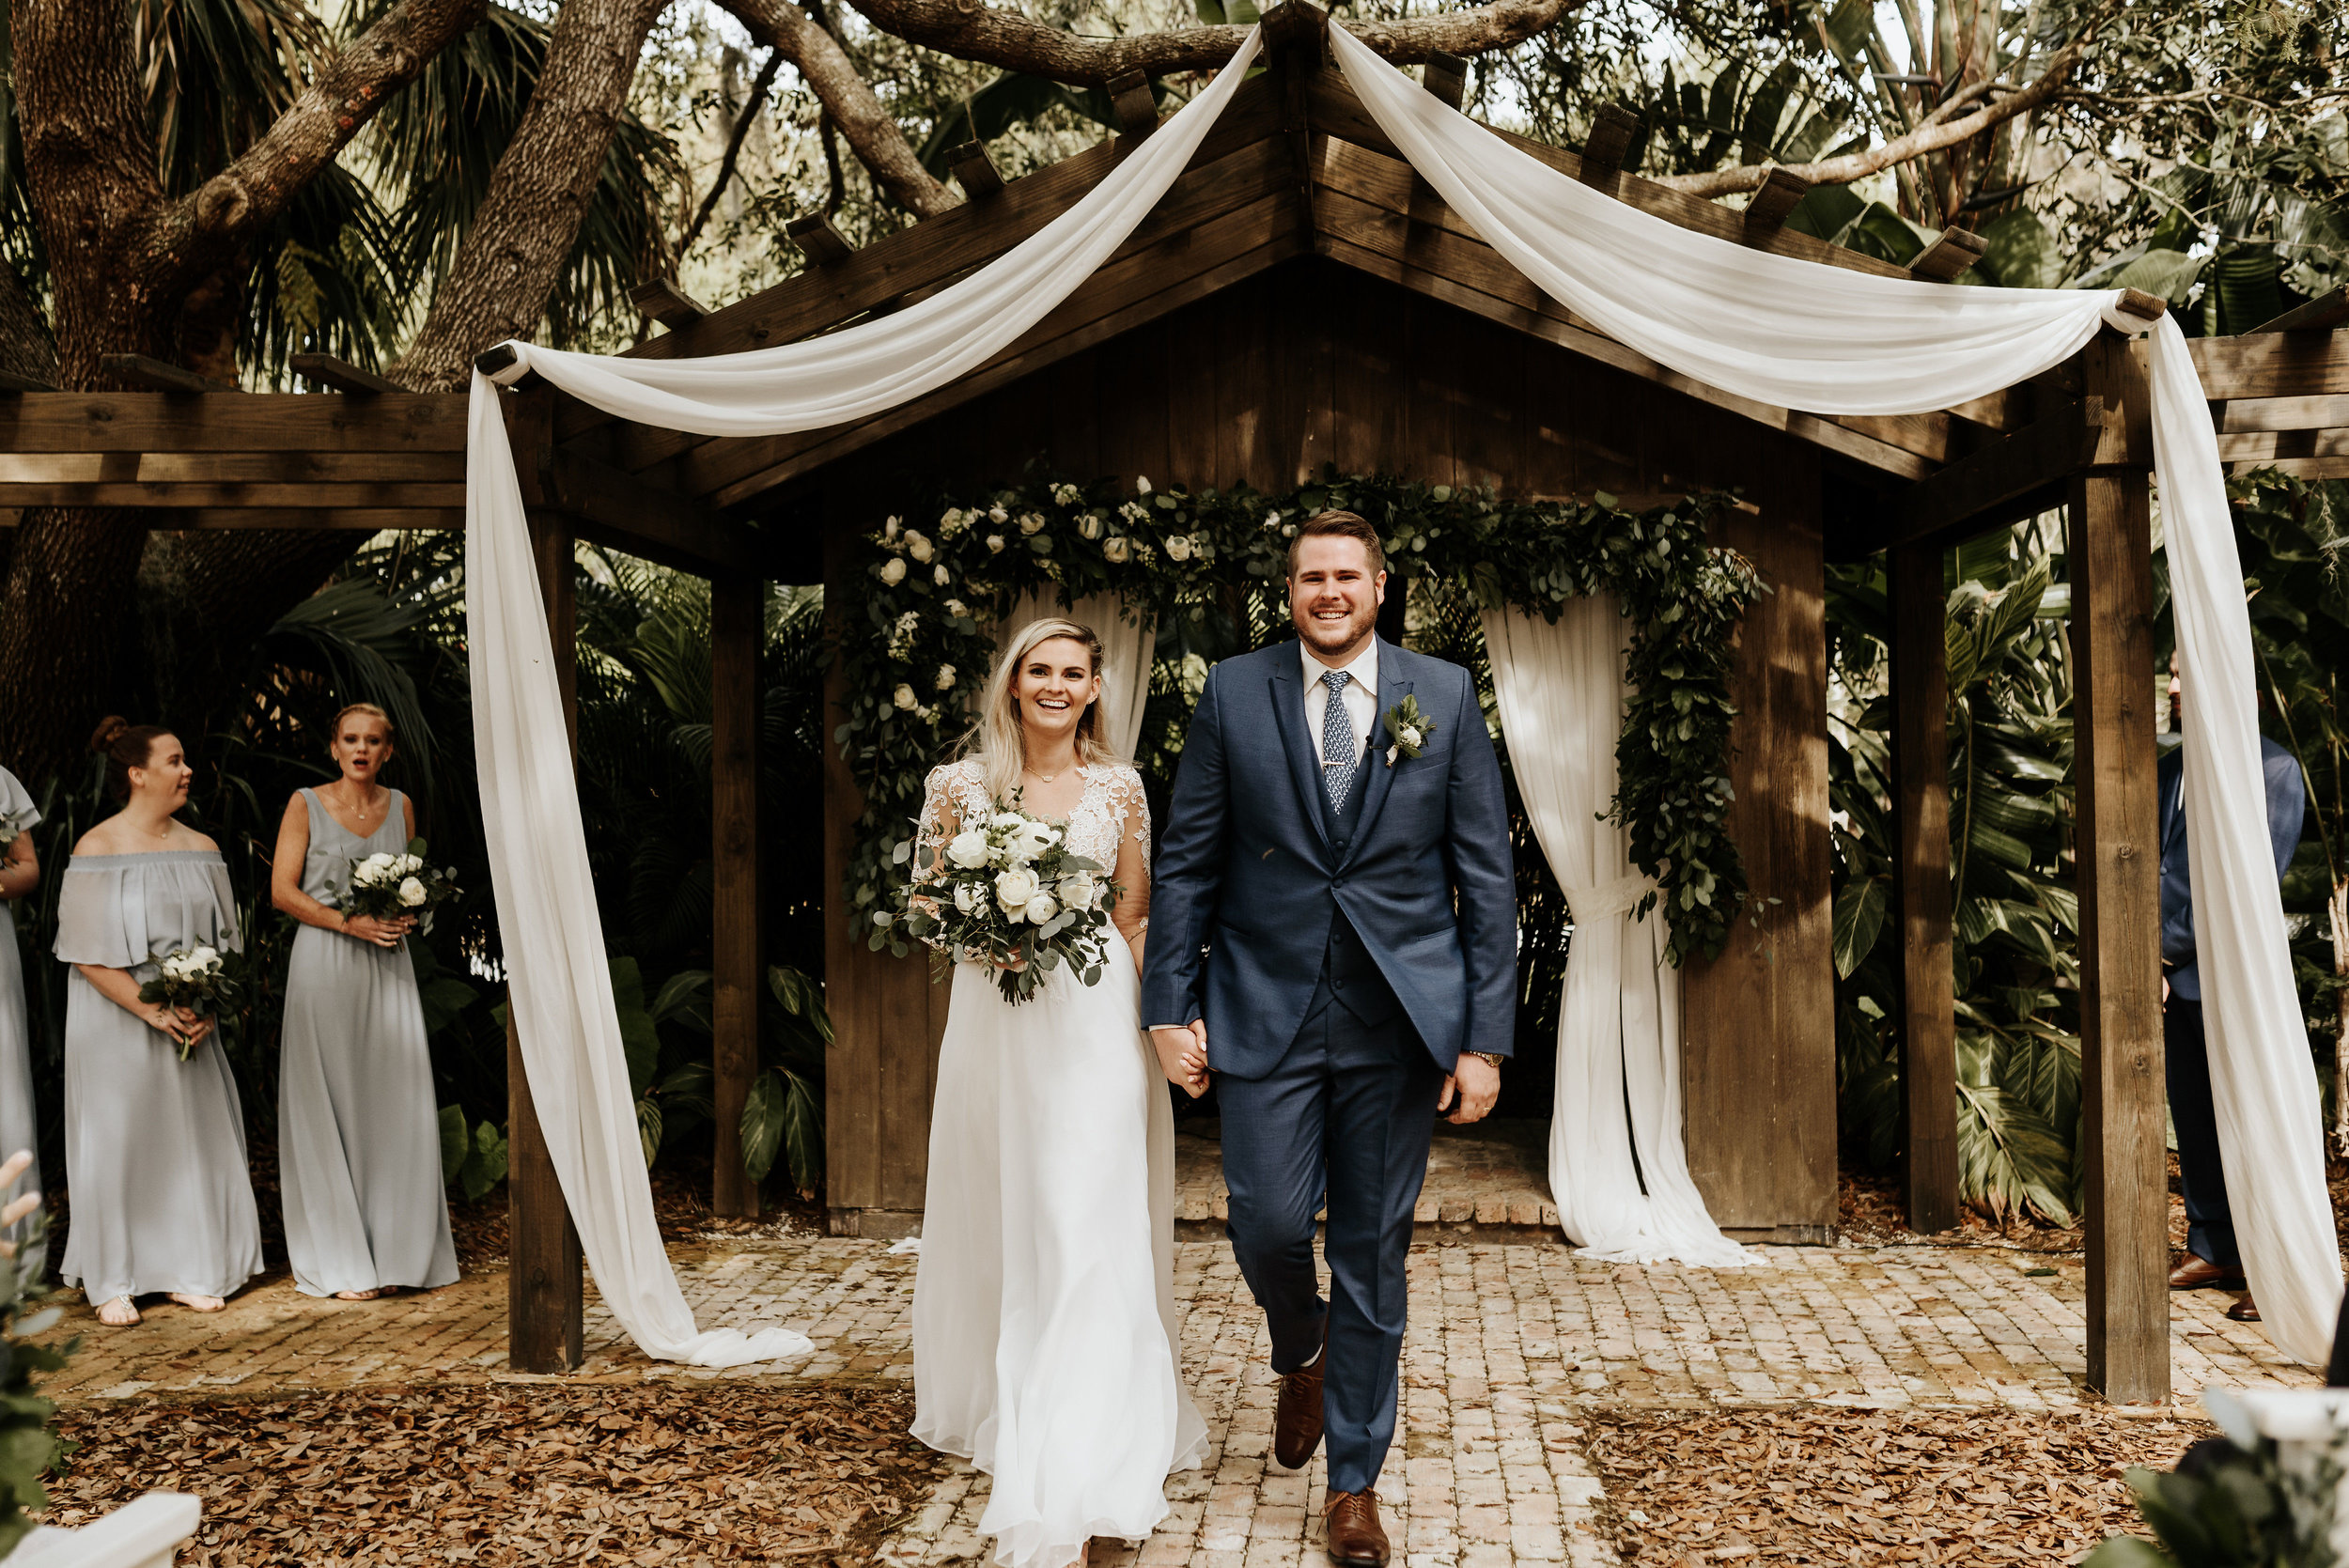 Mikenzi_Brad_Wedding_The_Delamater_House_New_Smyrna_Beach_Florida_Photography_by_V_0228.jpg